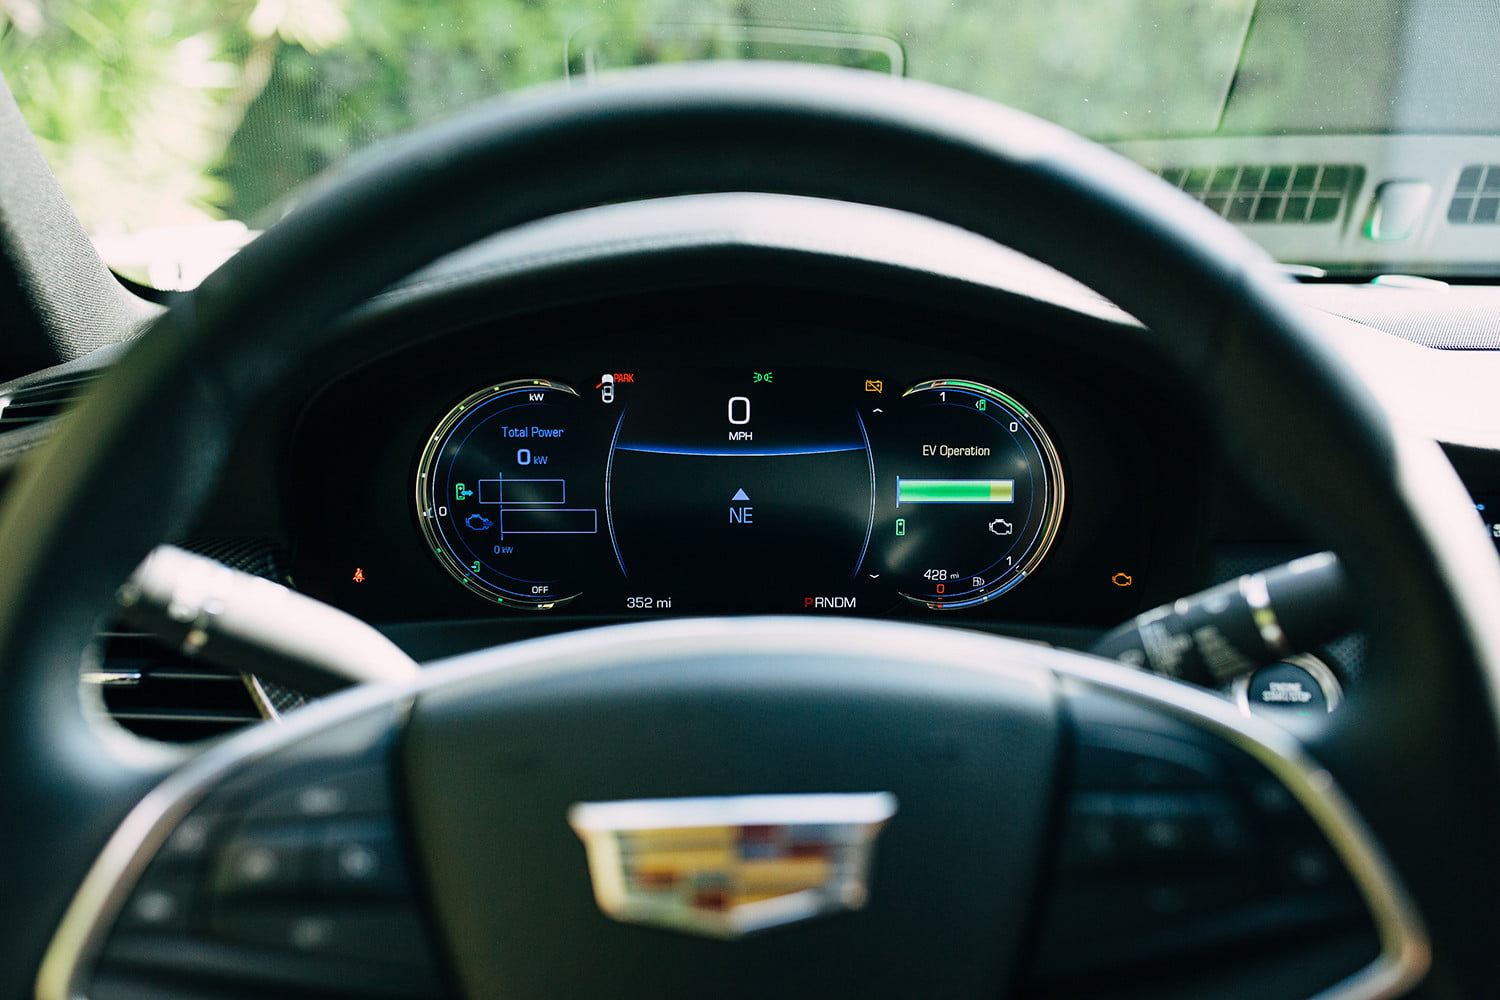 2017 cadillac ct6 plug in first drive review digital trends. Black Bedroom Furniture Sets. Home Design Ideas